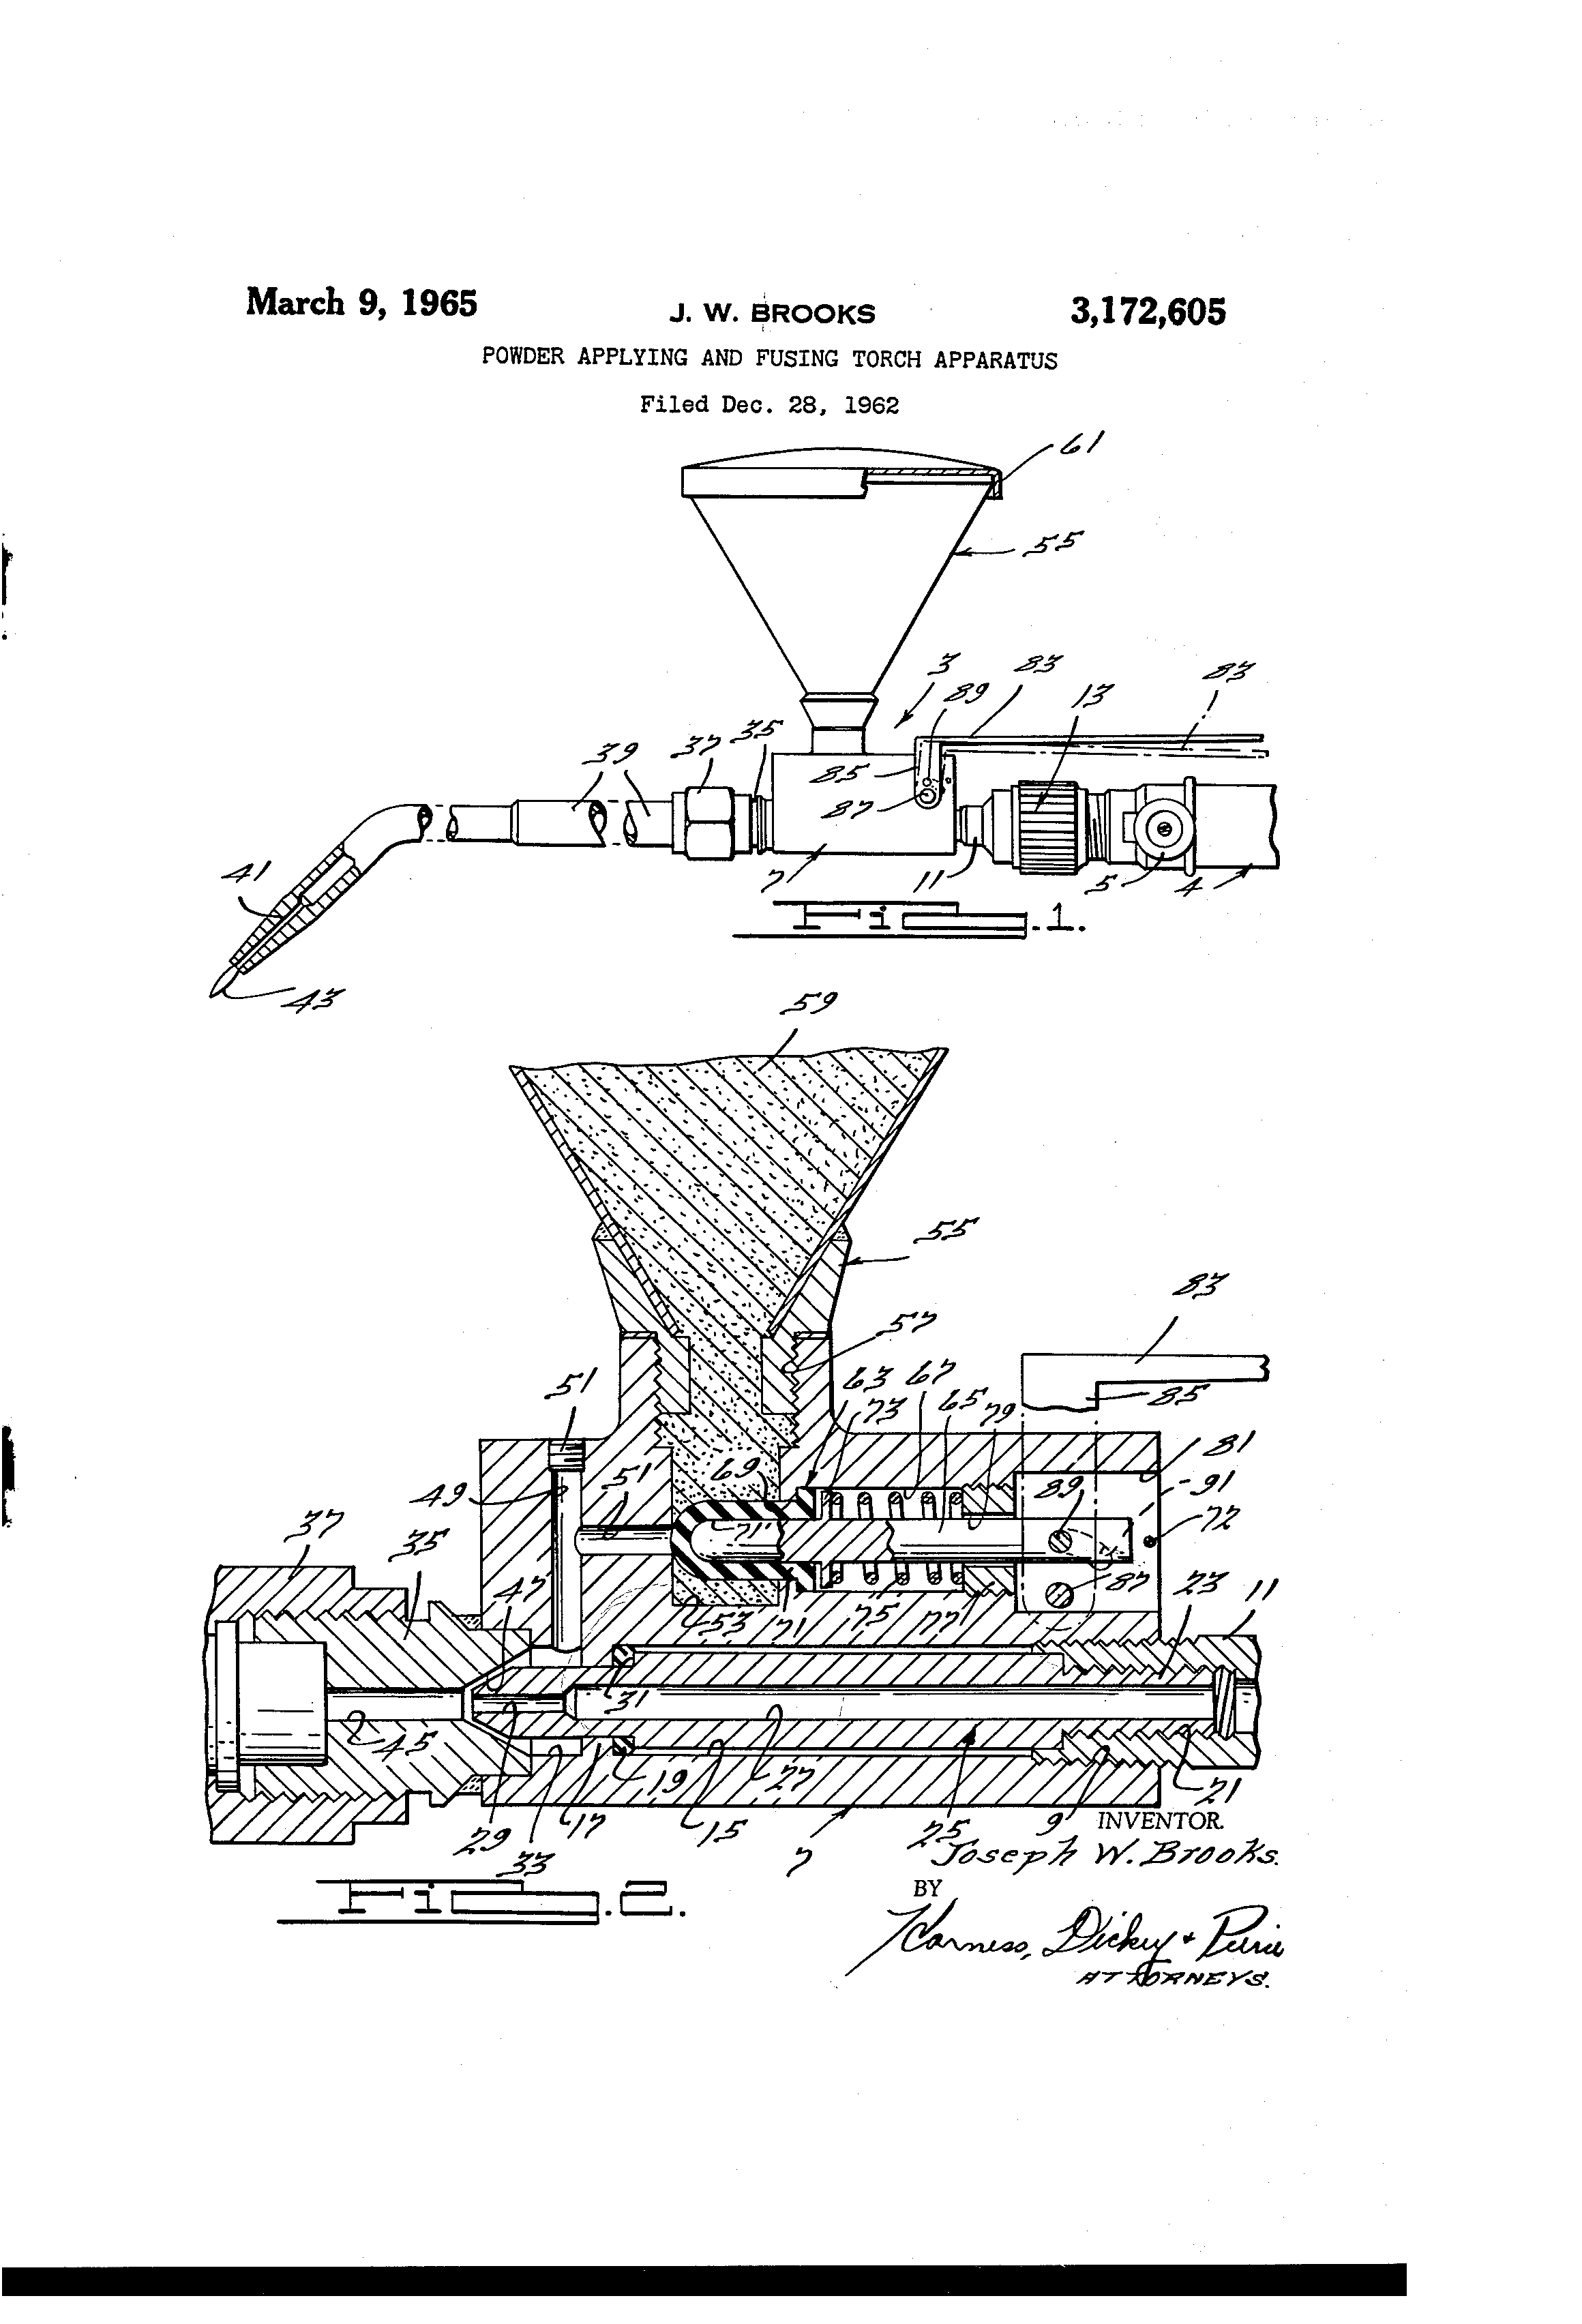 Brevet Us3172605 Powder Applying And Fusing Torch Apparatus Oxy Acetylene Welding Equipment Diagram Patent Drawing